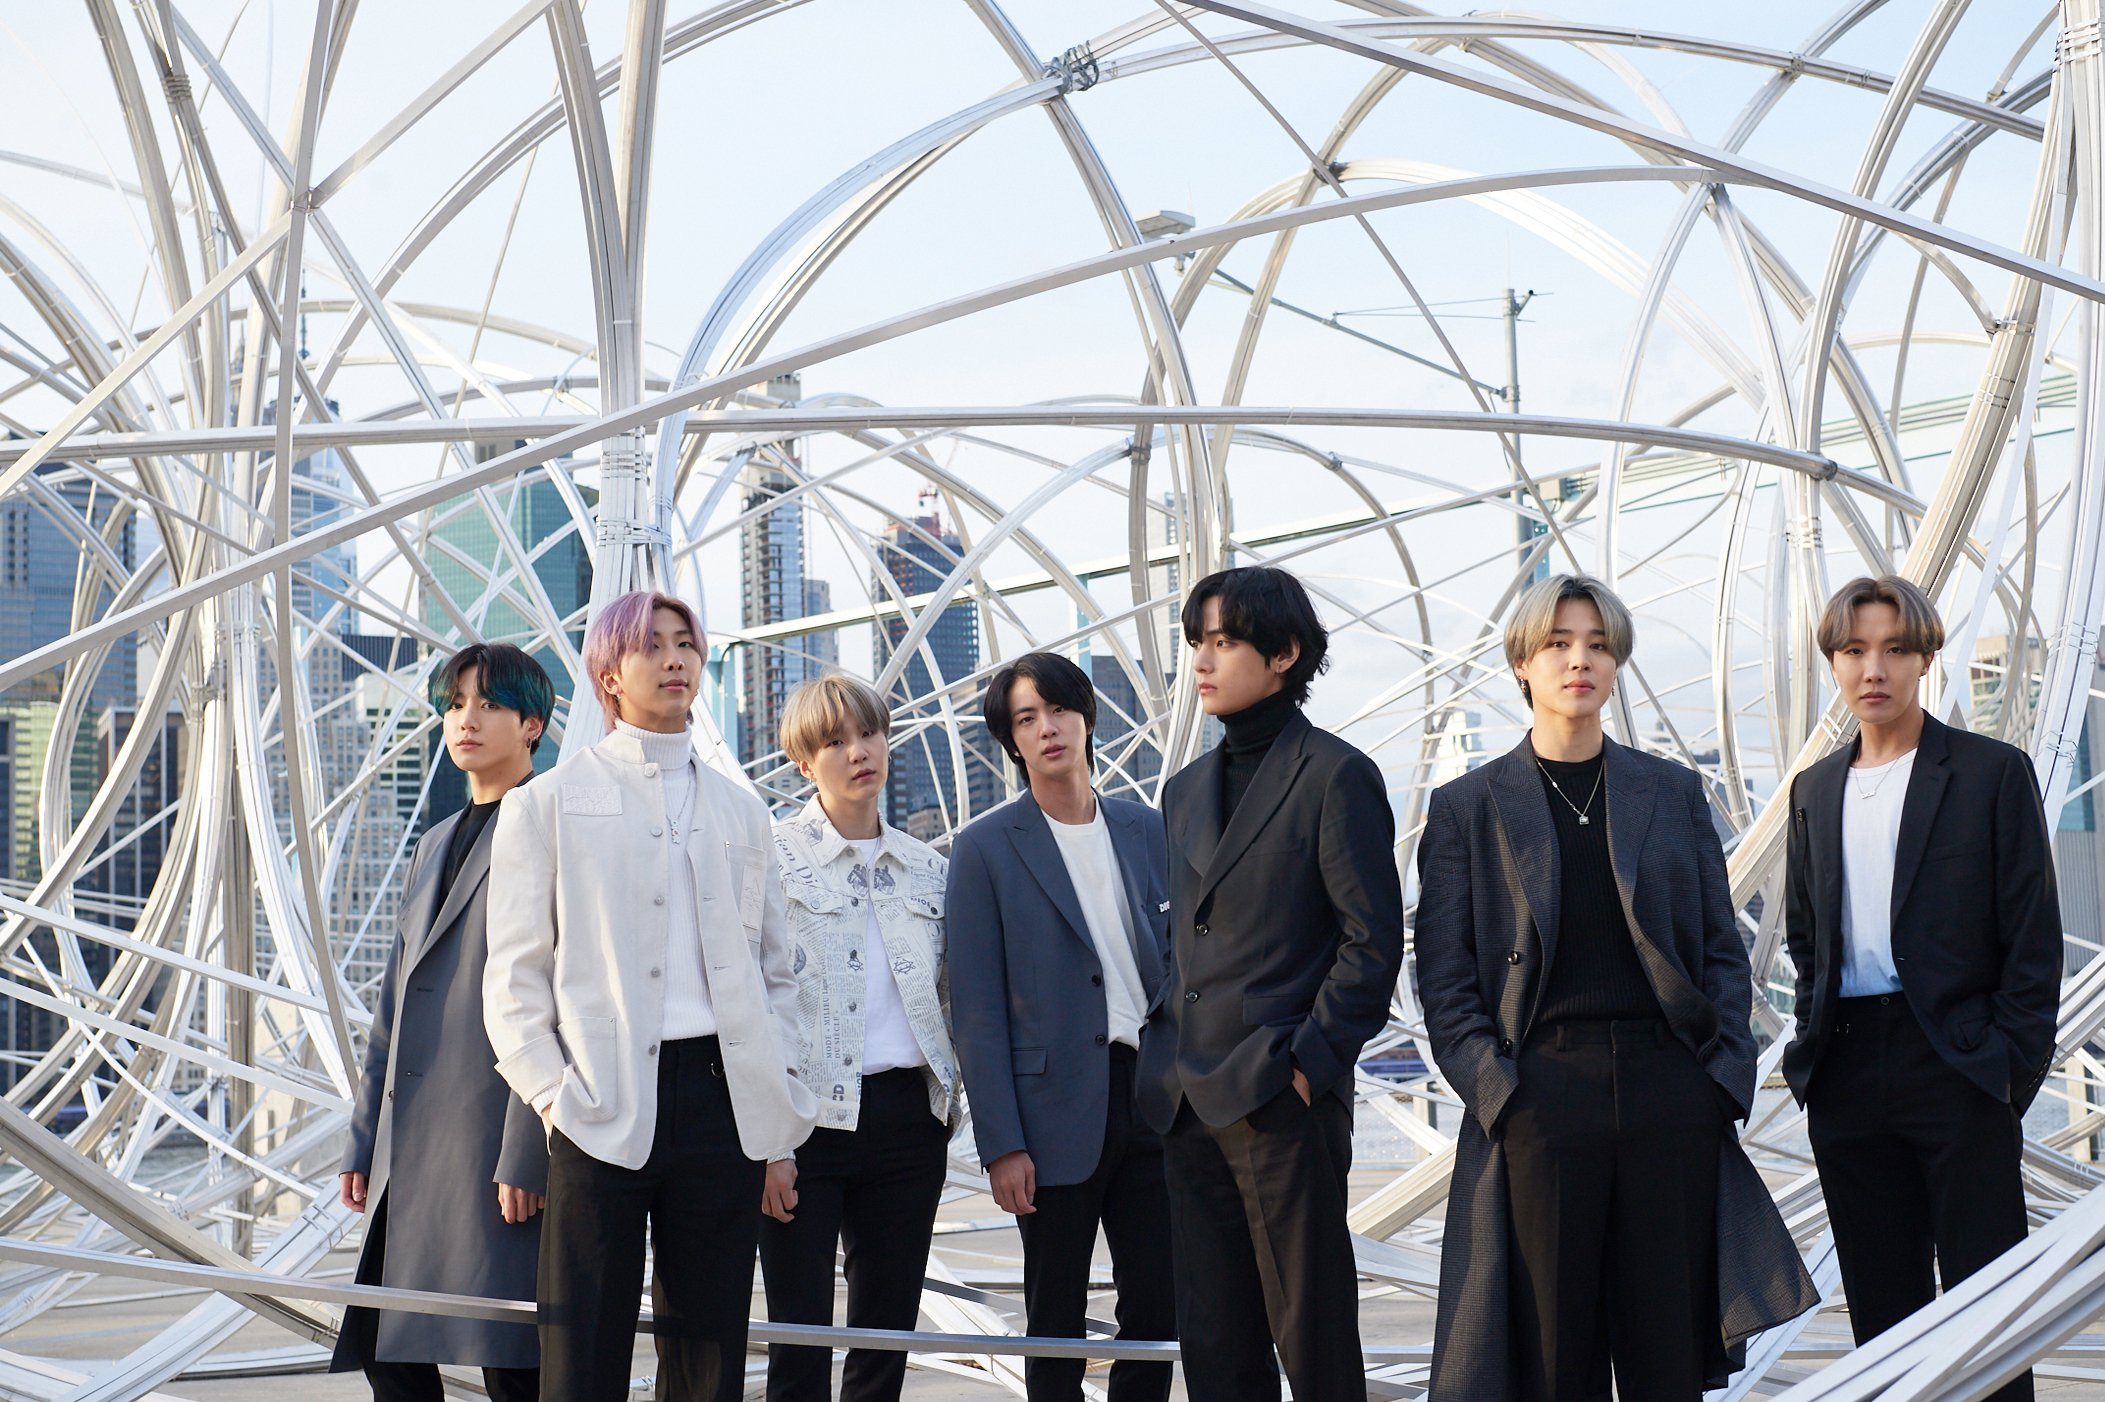 CONNECT BTS Akhirnya Dirilis, Teori di Balik Comeback 2020 dan Map of The Soul: 7 Mulai Terkuak © Big Hit Entertainment